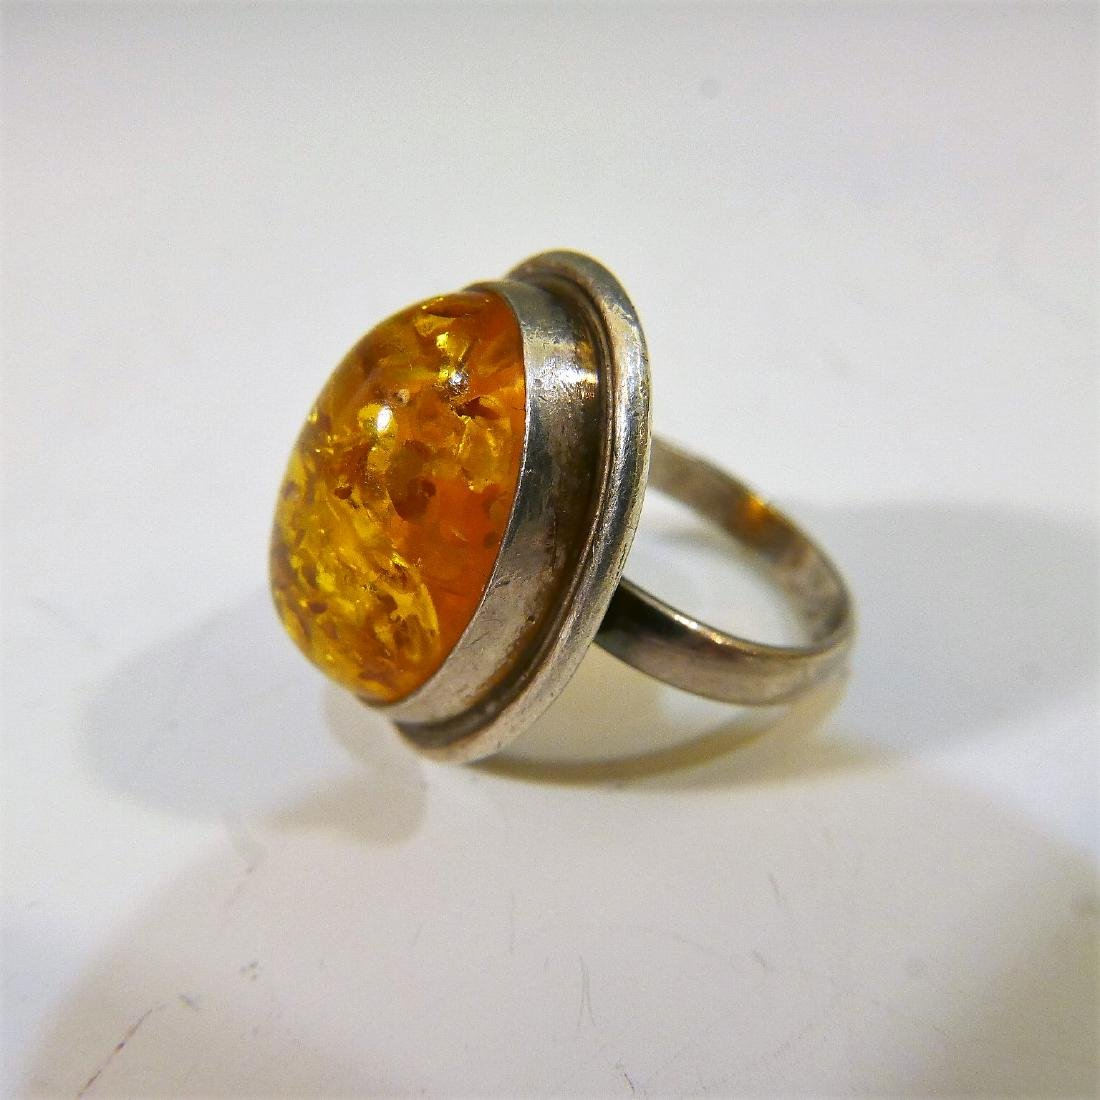 STERLING SILVER AMBER RING - 2